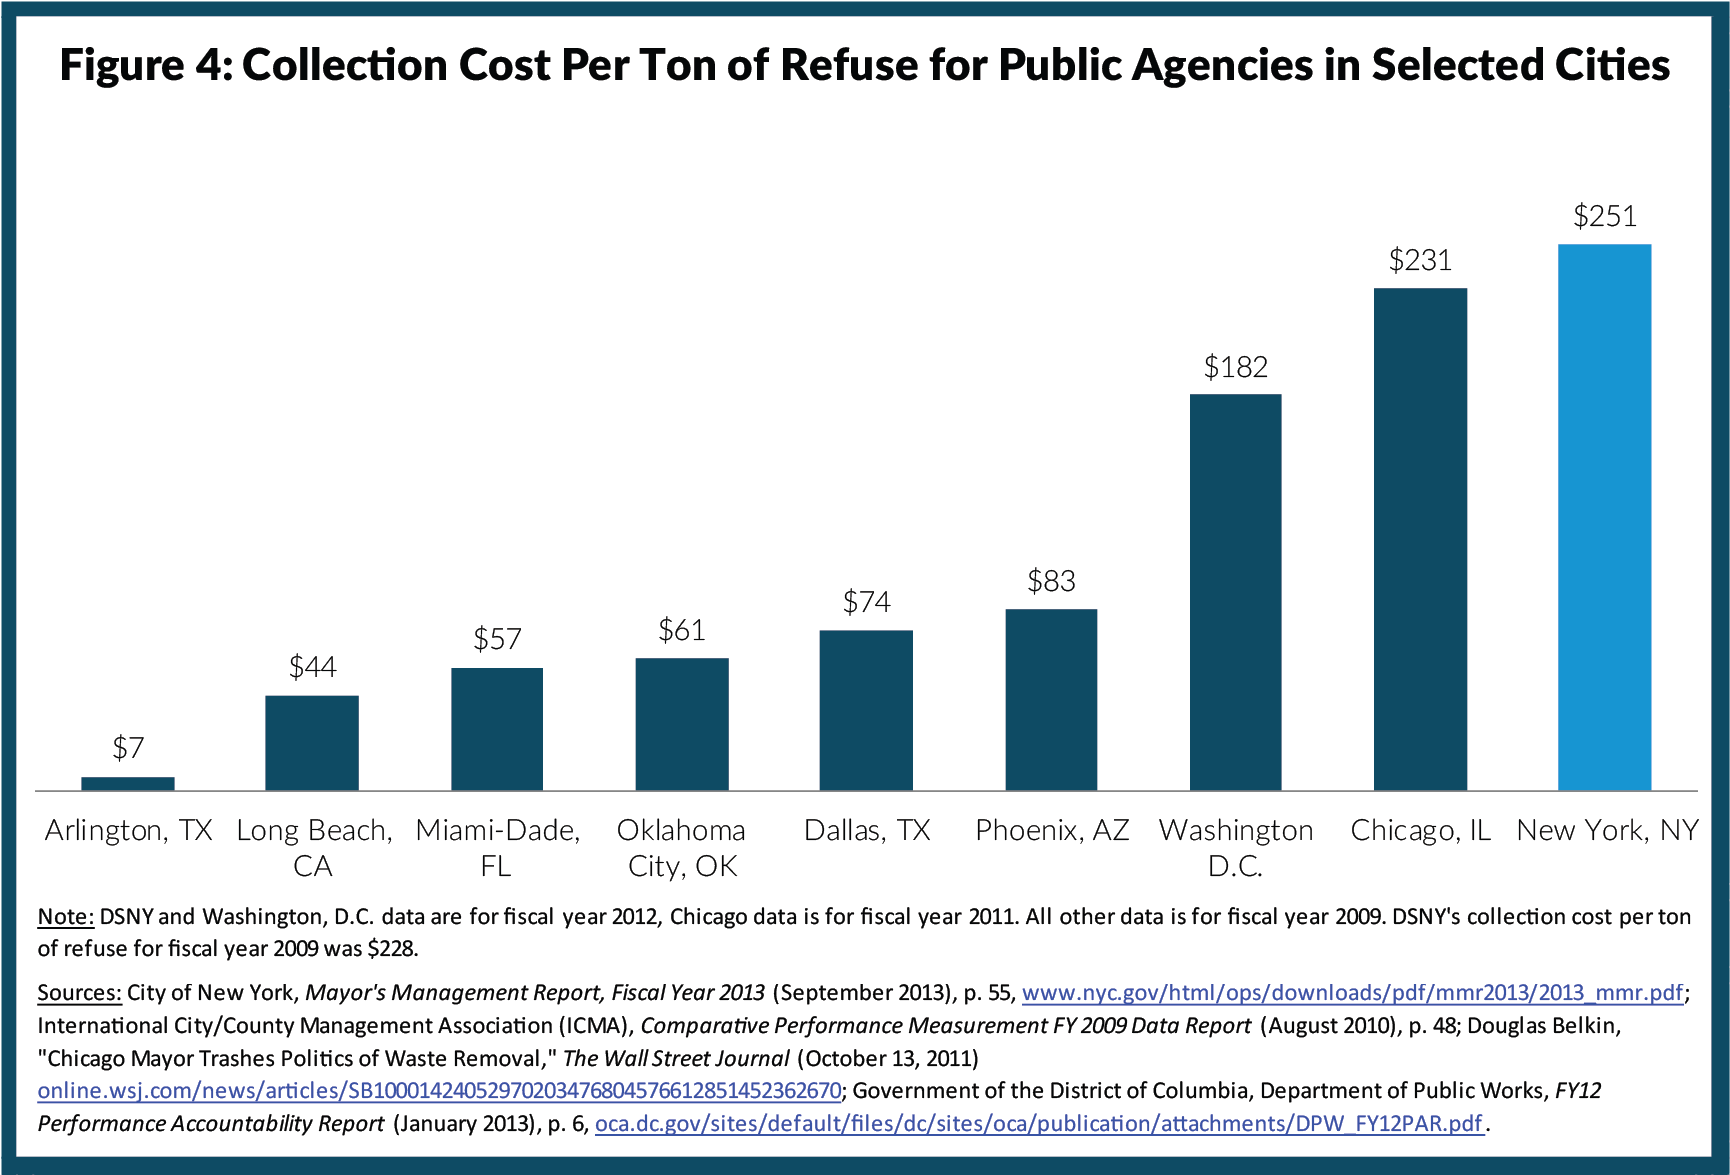 Figure 4: Collection Cost Per Ton of Refuse for Public Agencies in Selected Cities